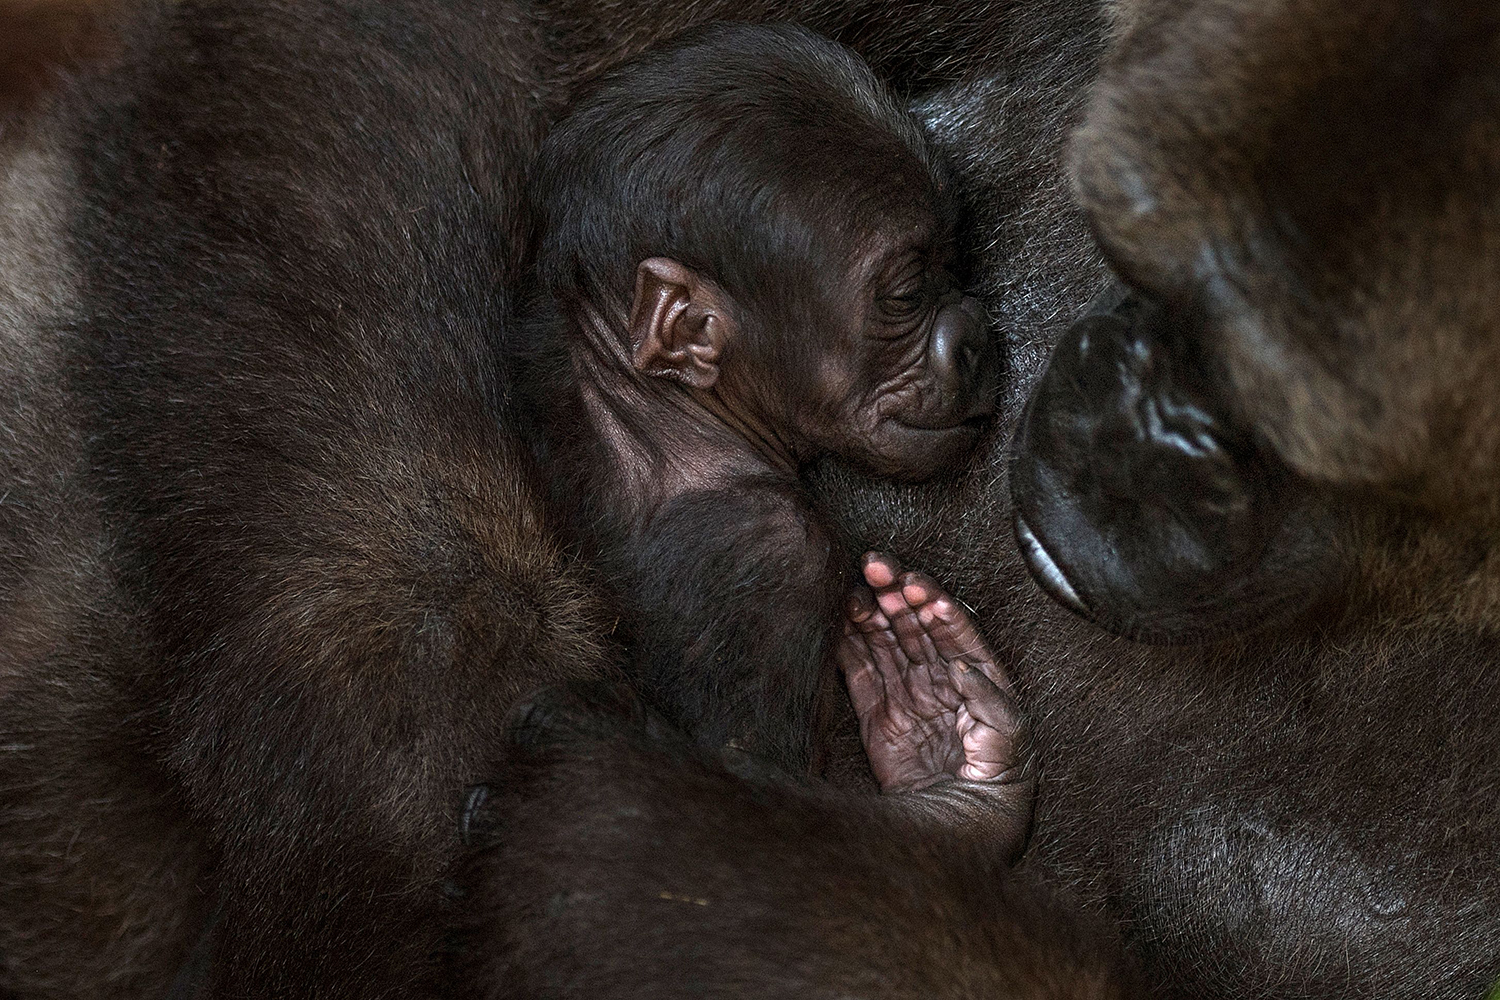 A gorilla named Buu holds its newborn at Bioparc Fuengirola in Spain on Nov. 13. JORGE GUERRERO/AFP via Getty Images